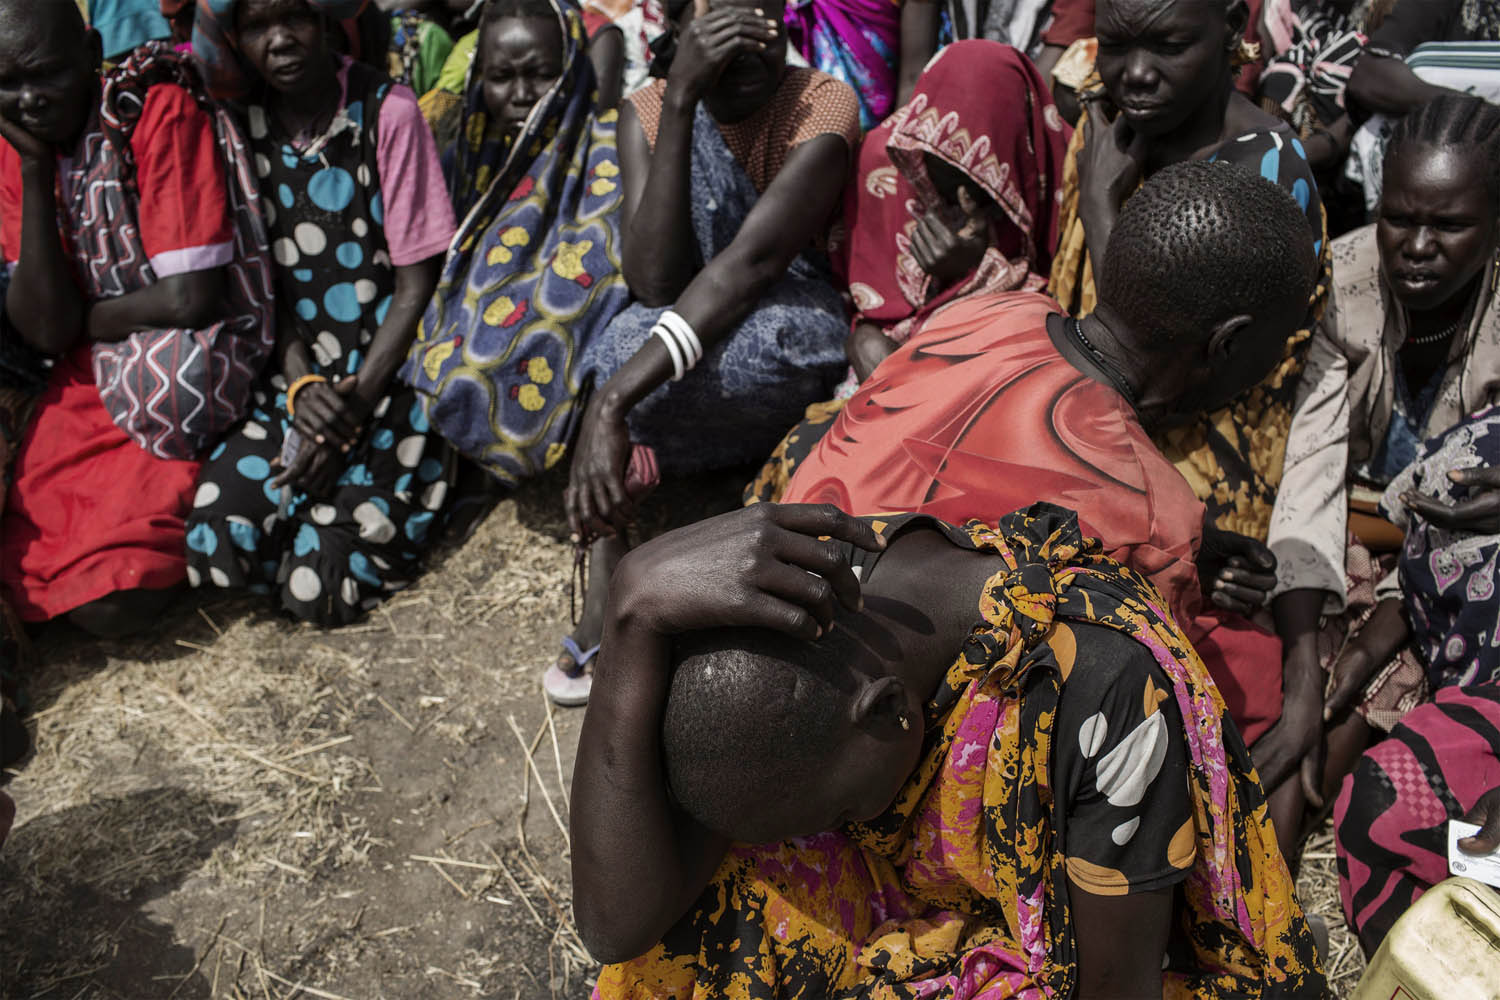 Feb. 7, 2014. South Sudanese internally displaced people (IDP) wait to be registered on the list of the World Food Program (WFP) at Mingkaman's temporary camp, South Sudan.